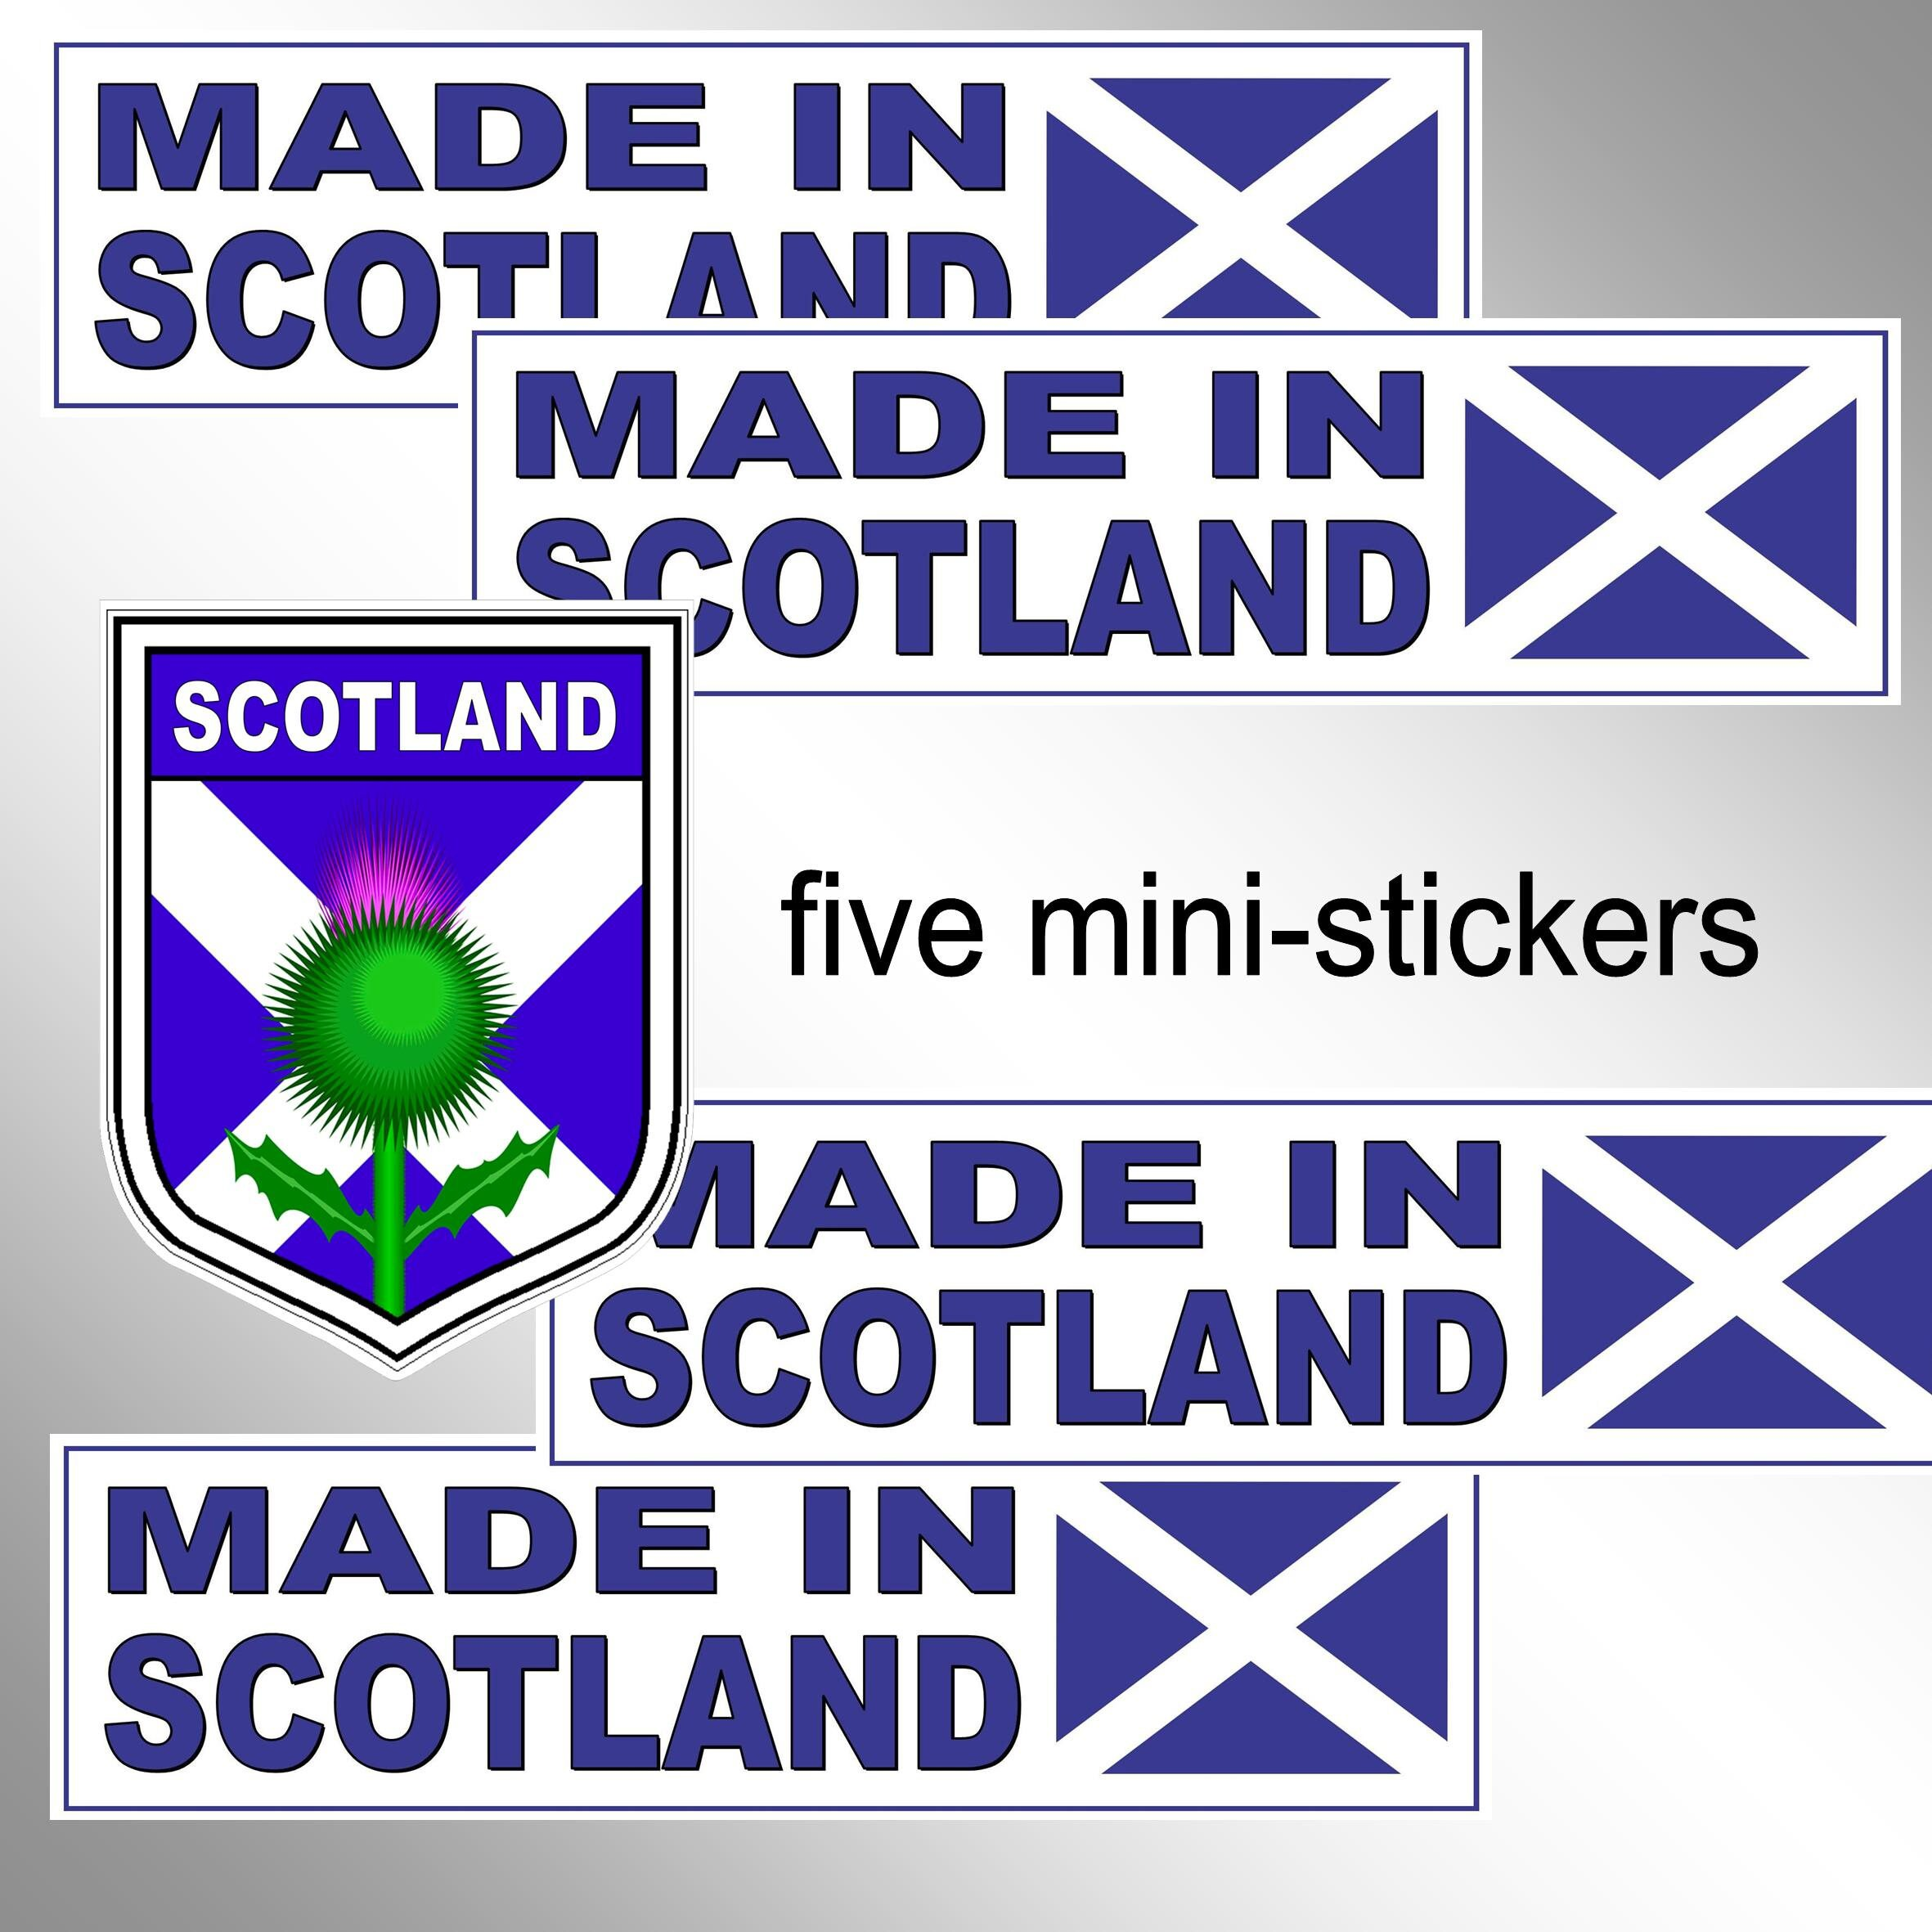 Vinyl 200 Cm Breed Made In Scotland Vinyl Stickers And Flag And Thistle Shield 5 Mini Stickers Vinyl Scots